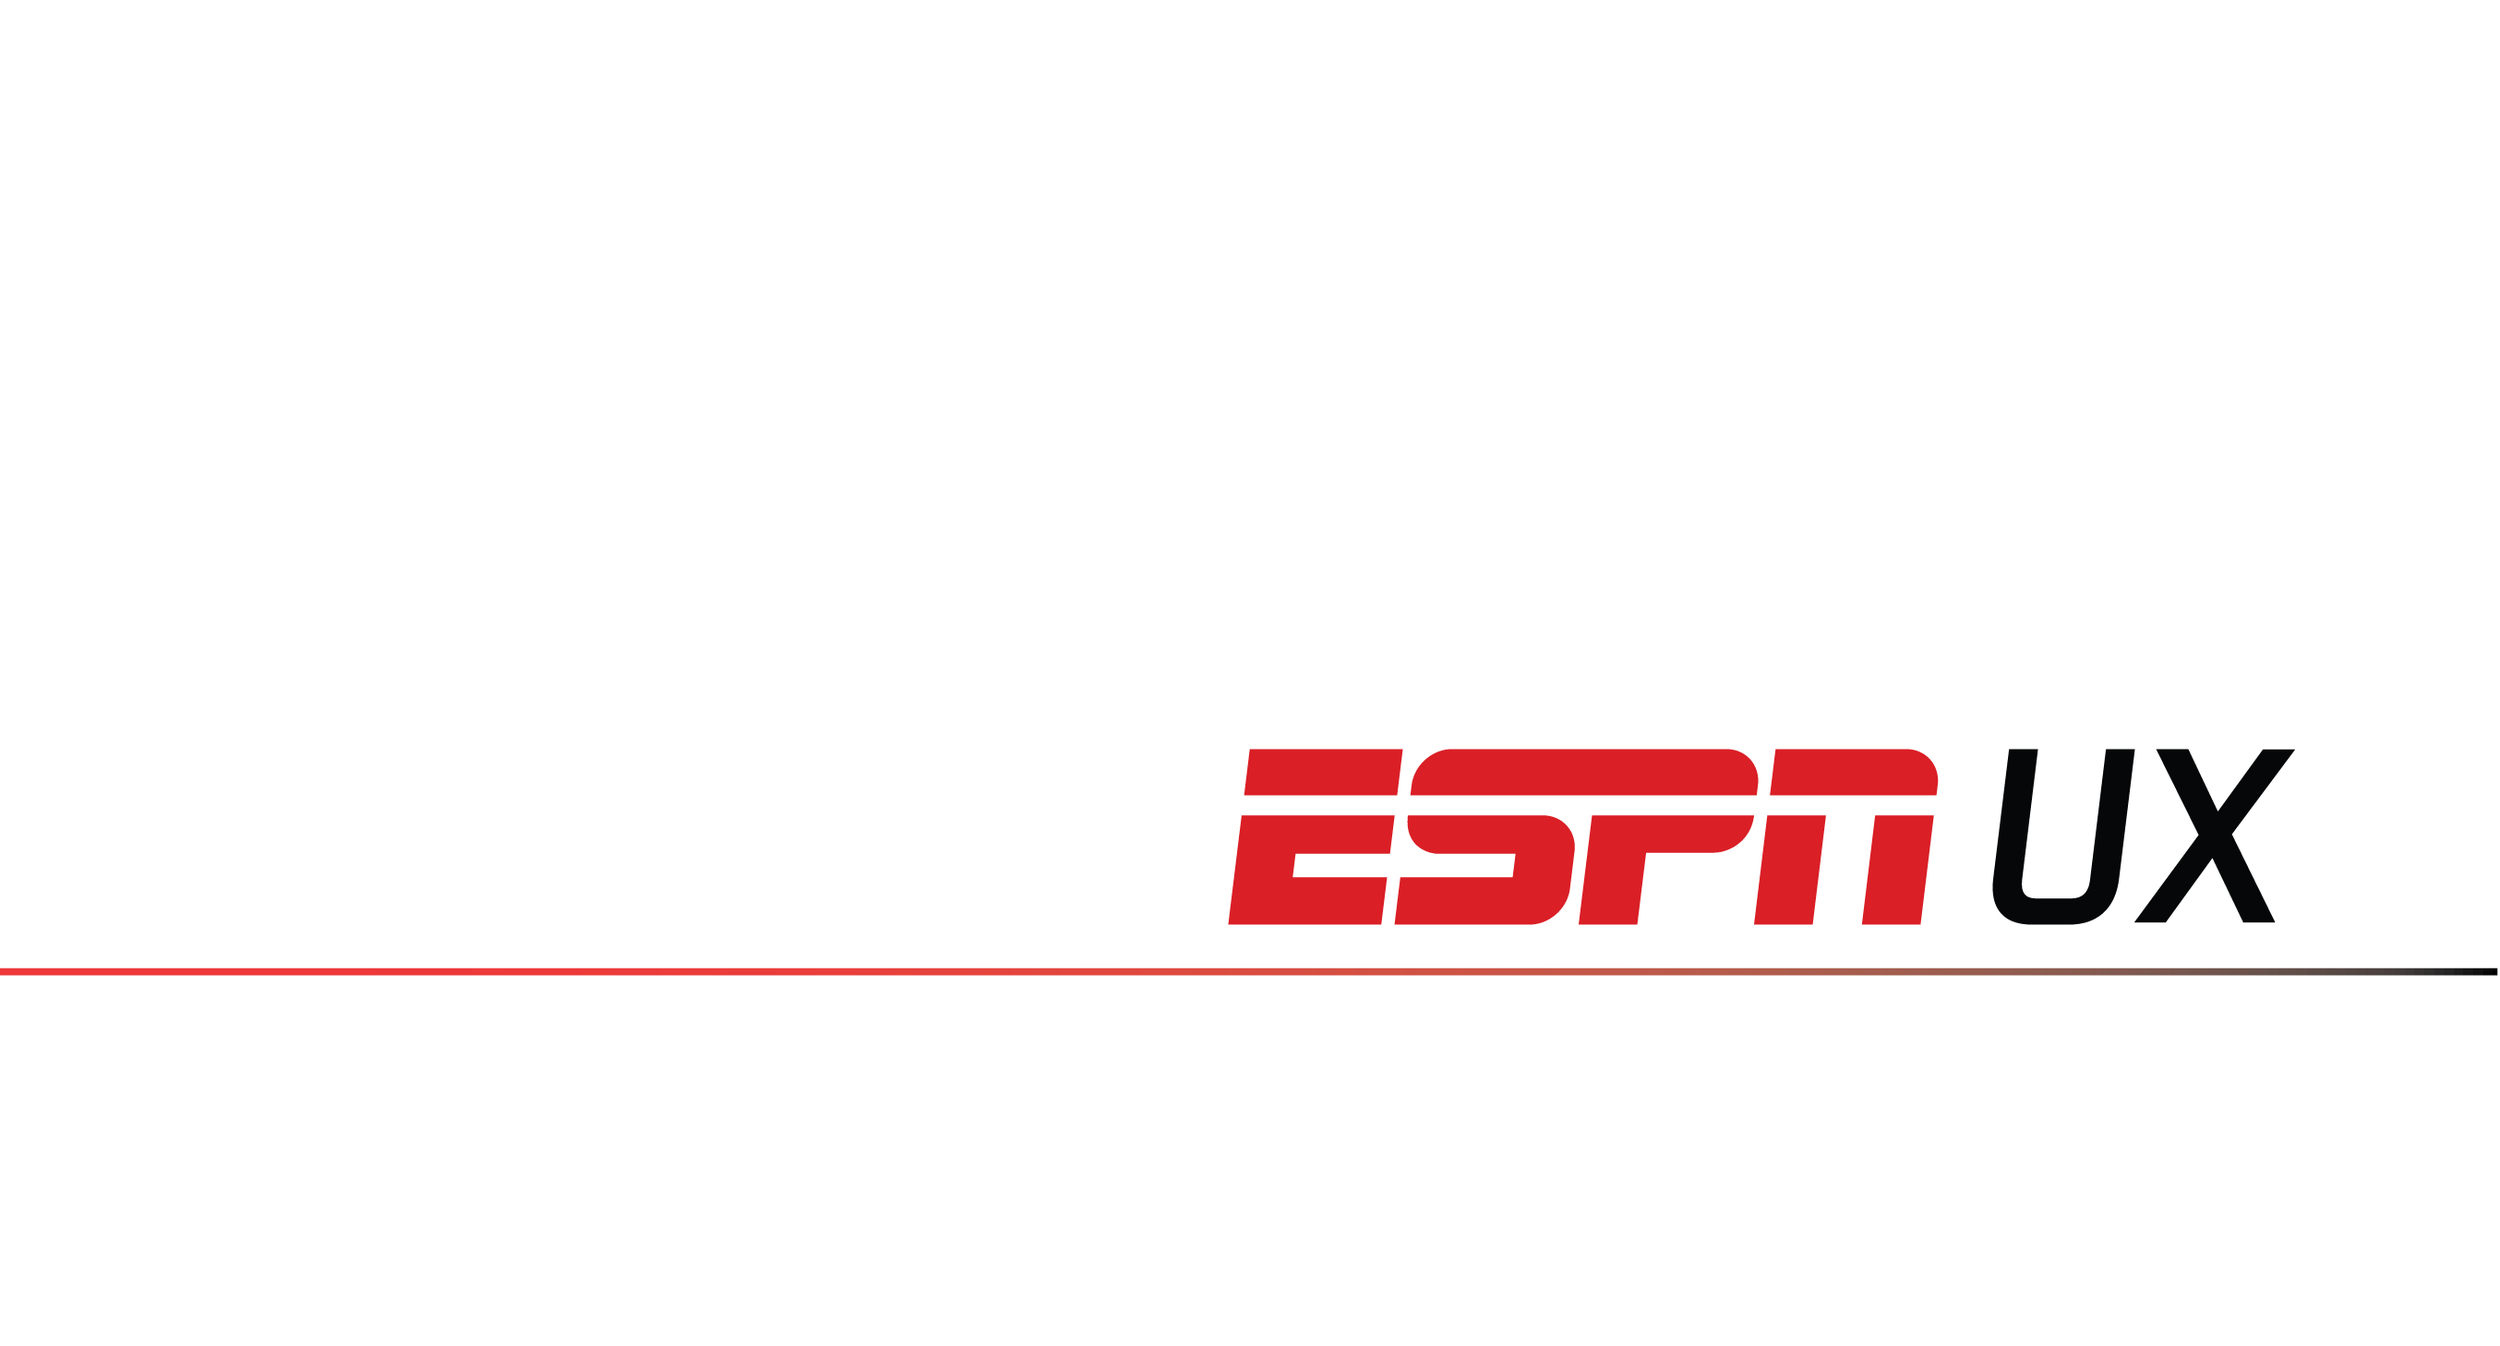 ESPN UX - Defining/implementing an iterative design process